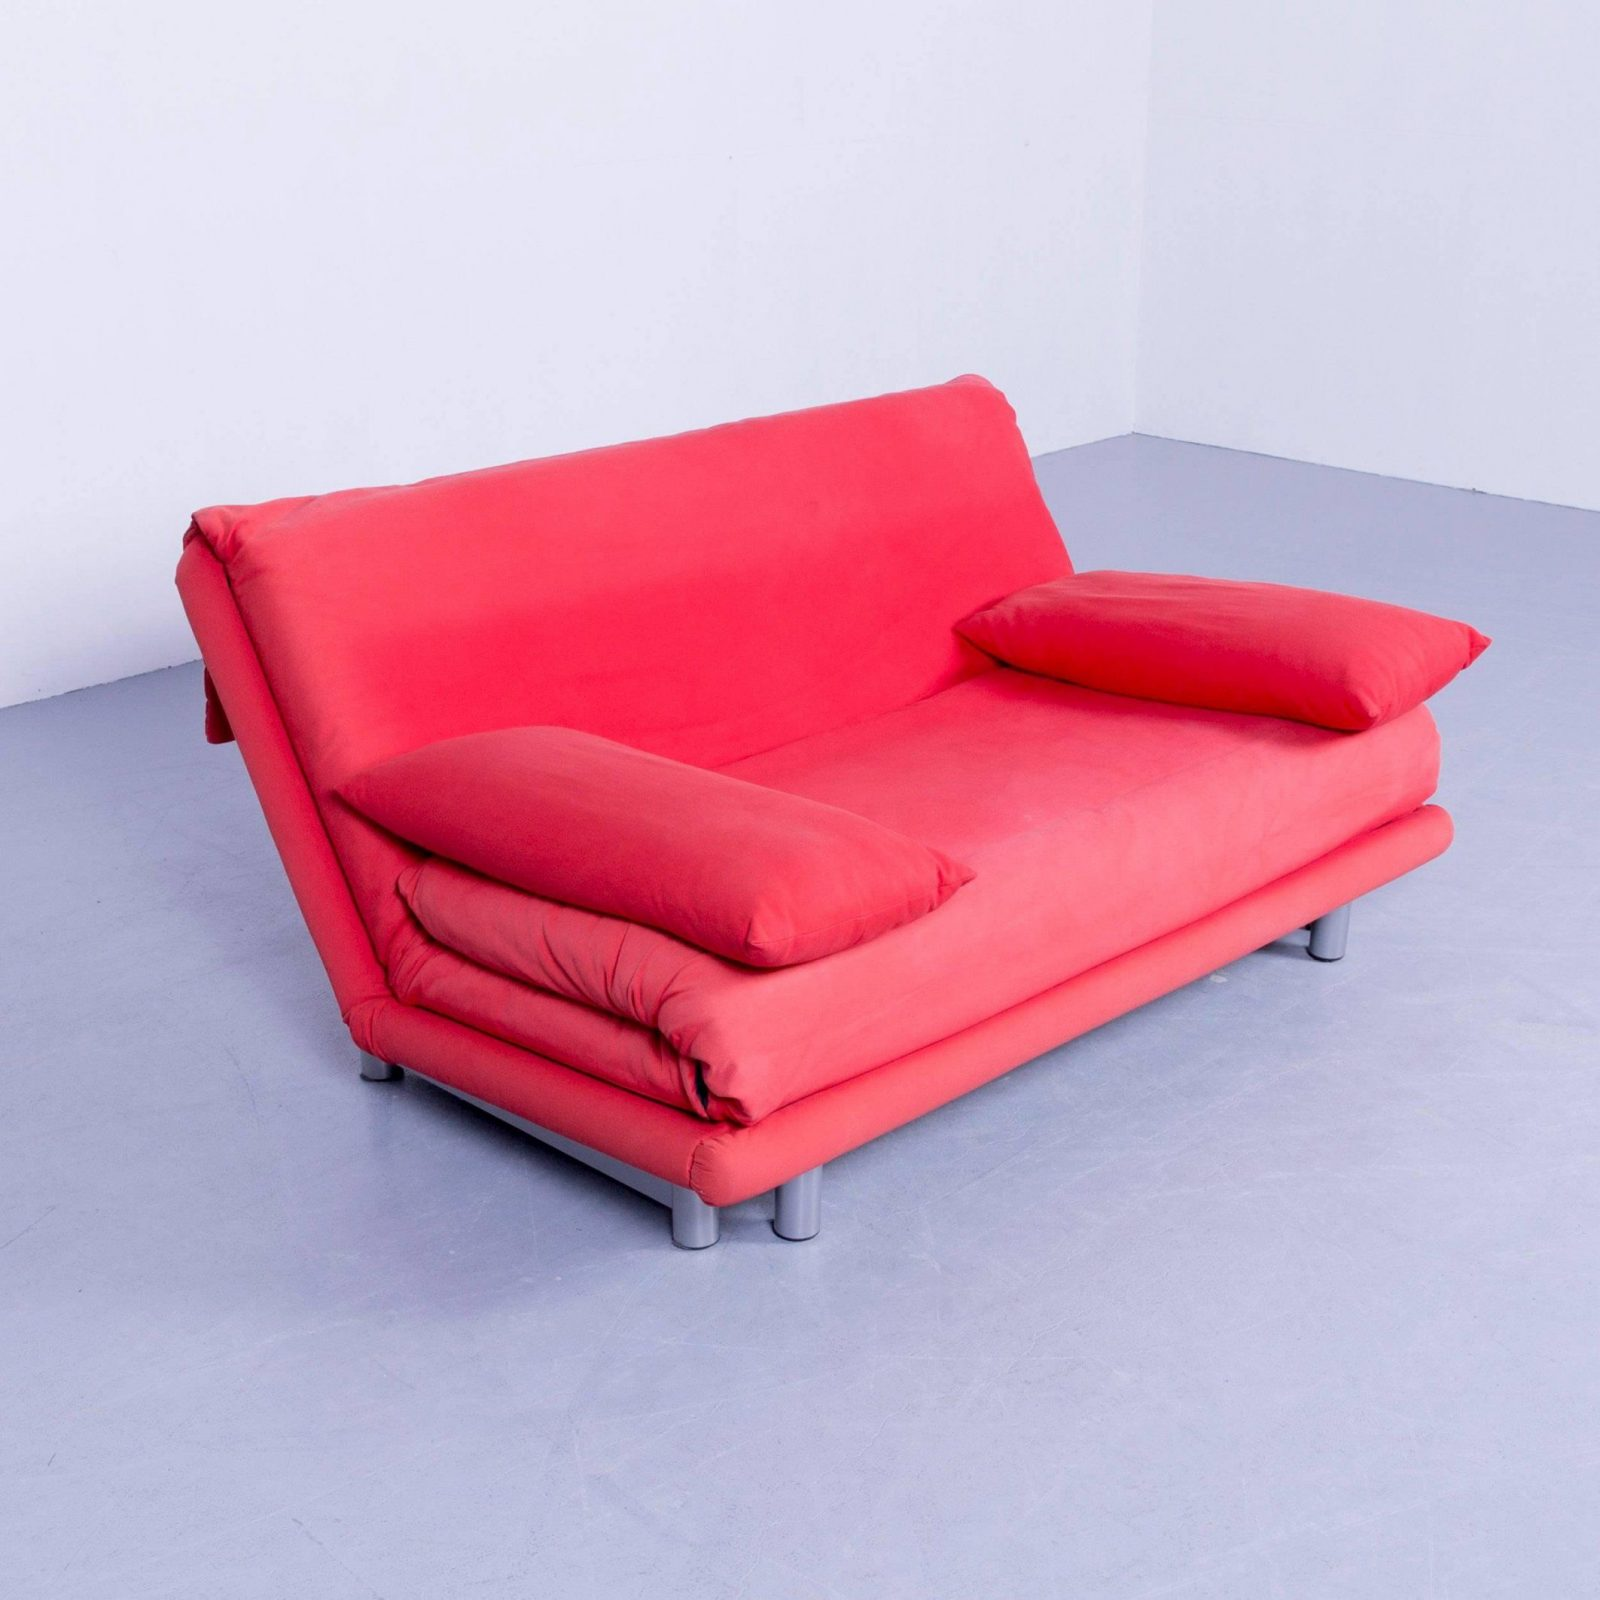 Original Ligne Roset Multy Cloth Sleeping Couch Red Twoseat von Ligne Roset Schlafsofa Multy Bild